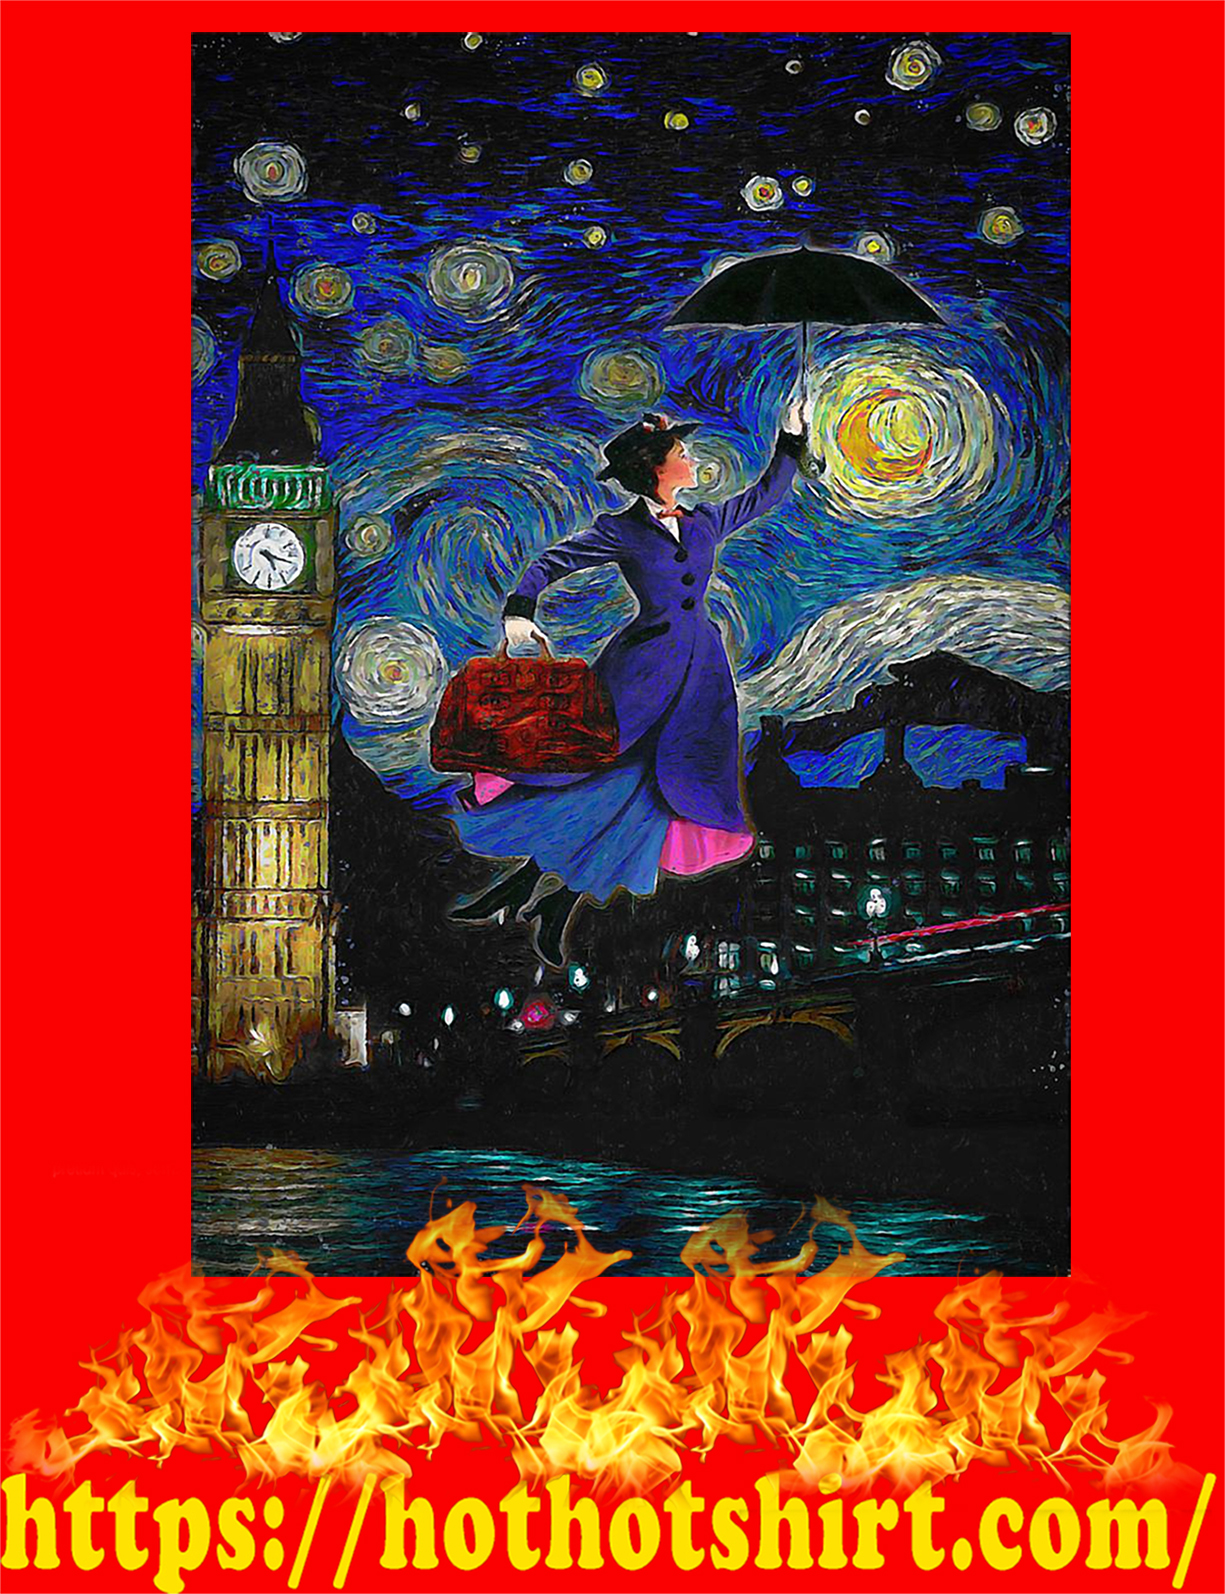 Mary poppins starry night van gogh poster - A3